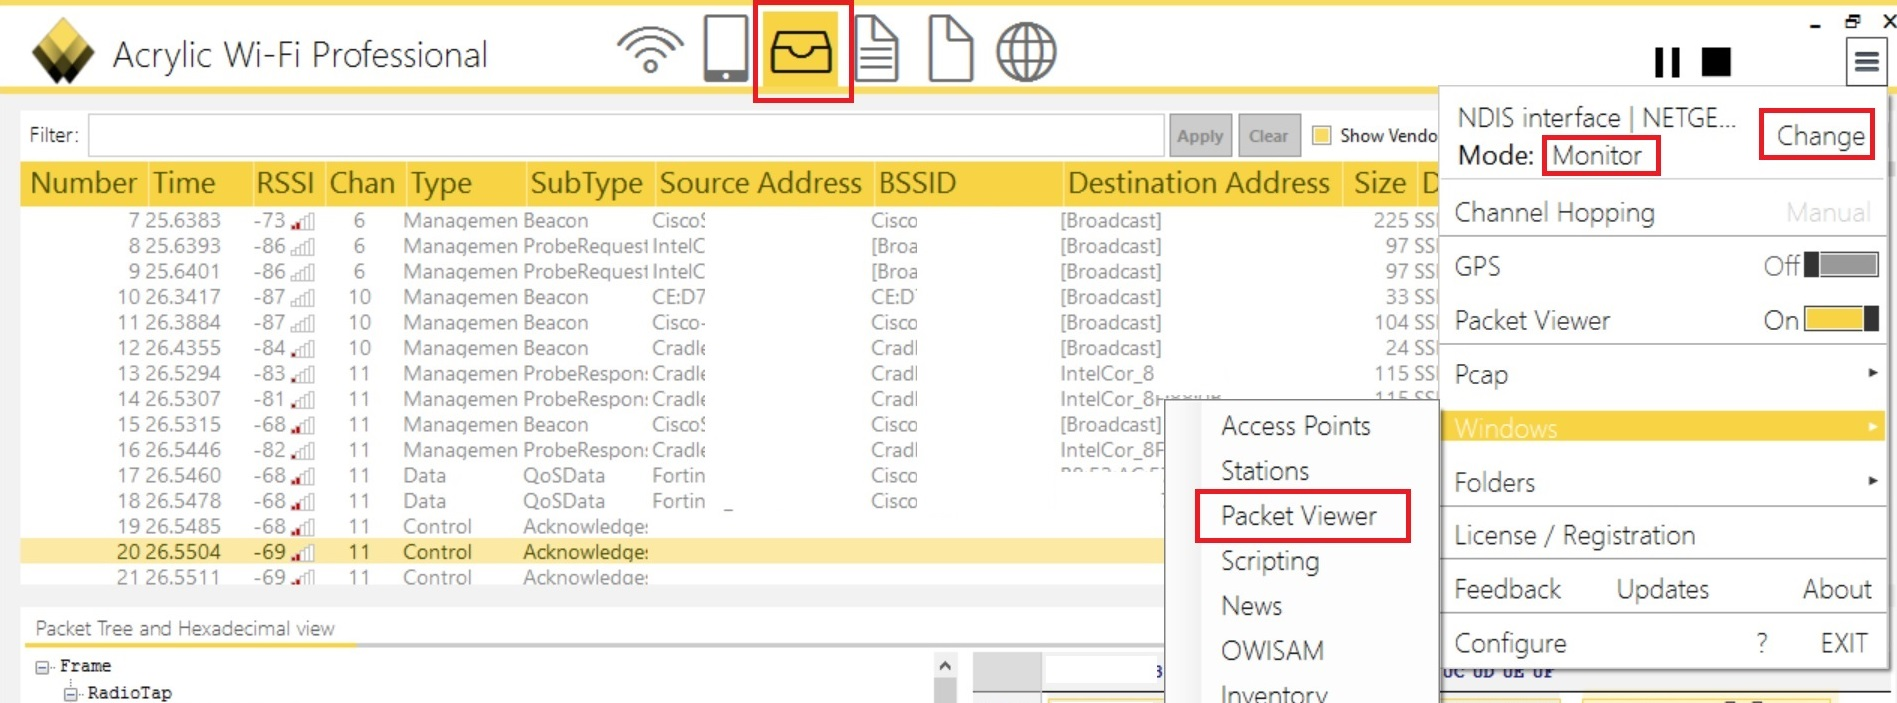 Capturing 802.11 management frames on Windows using Acrylic WiFi Pro ...